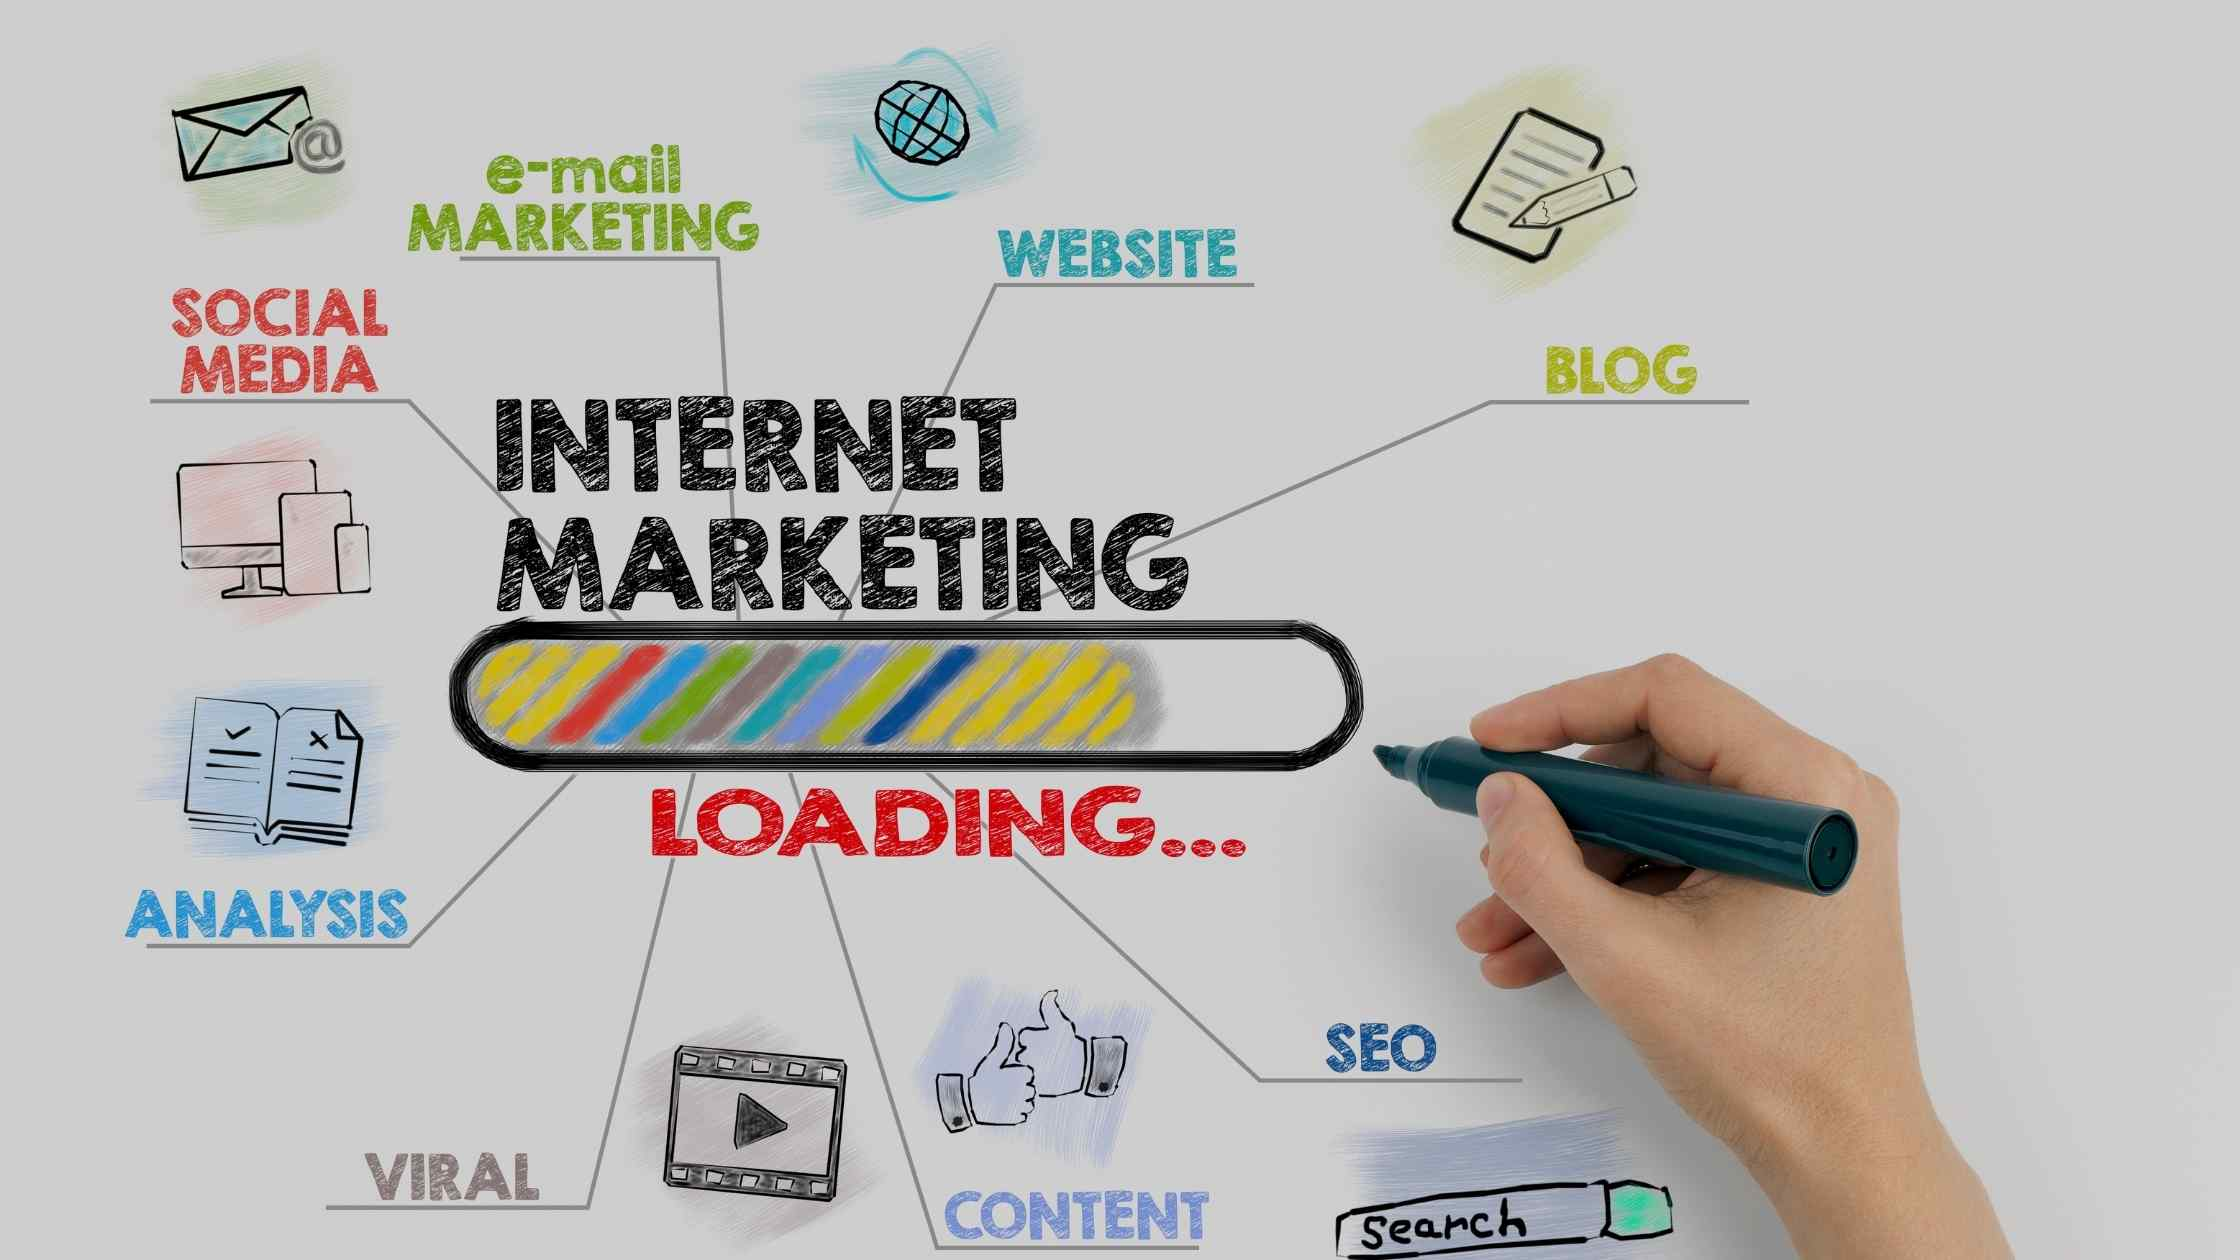 10 Things You Can Do to Improve Your Internet Marketing